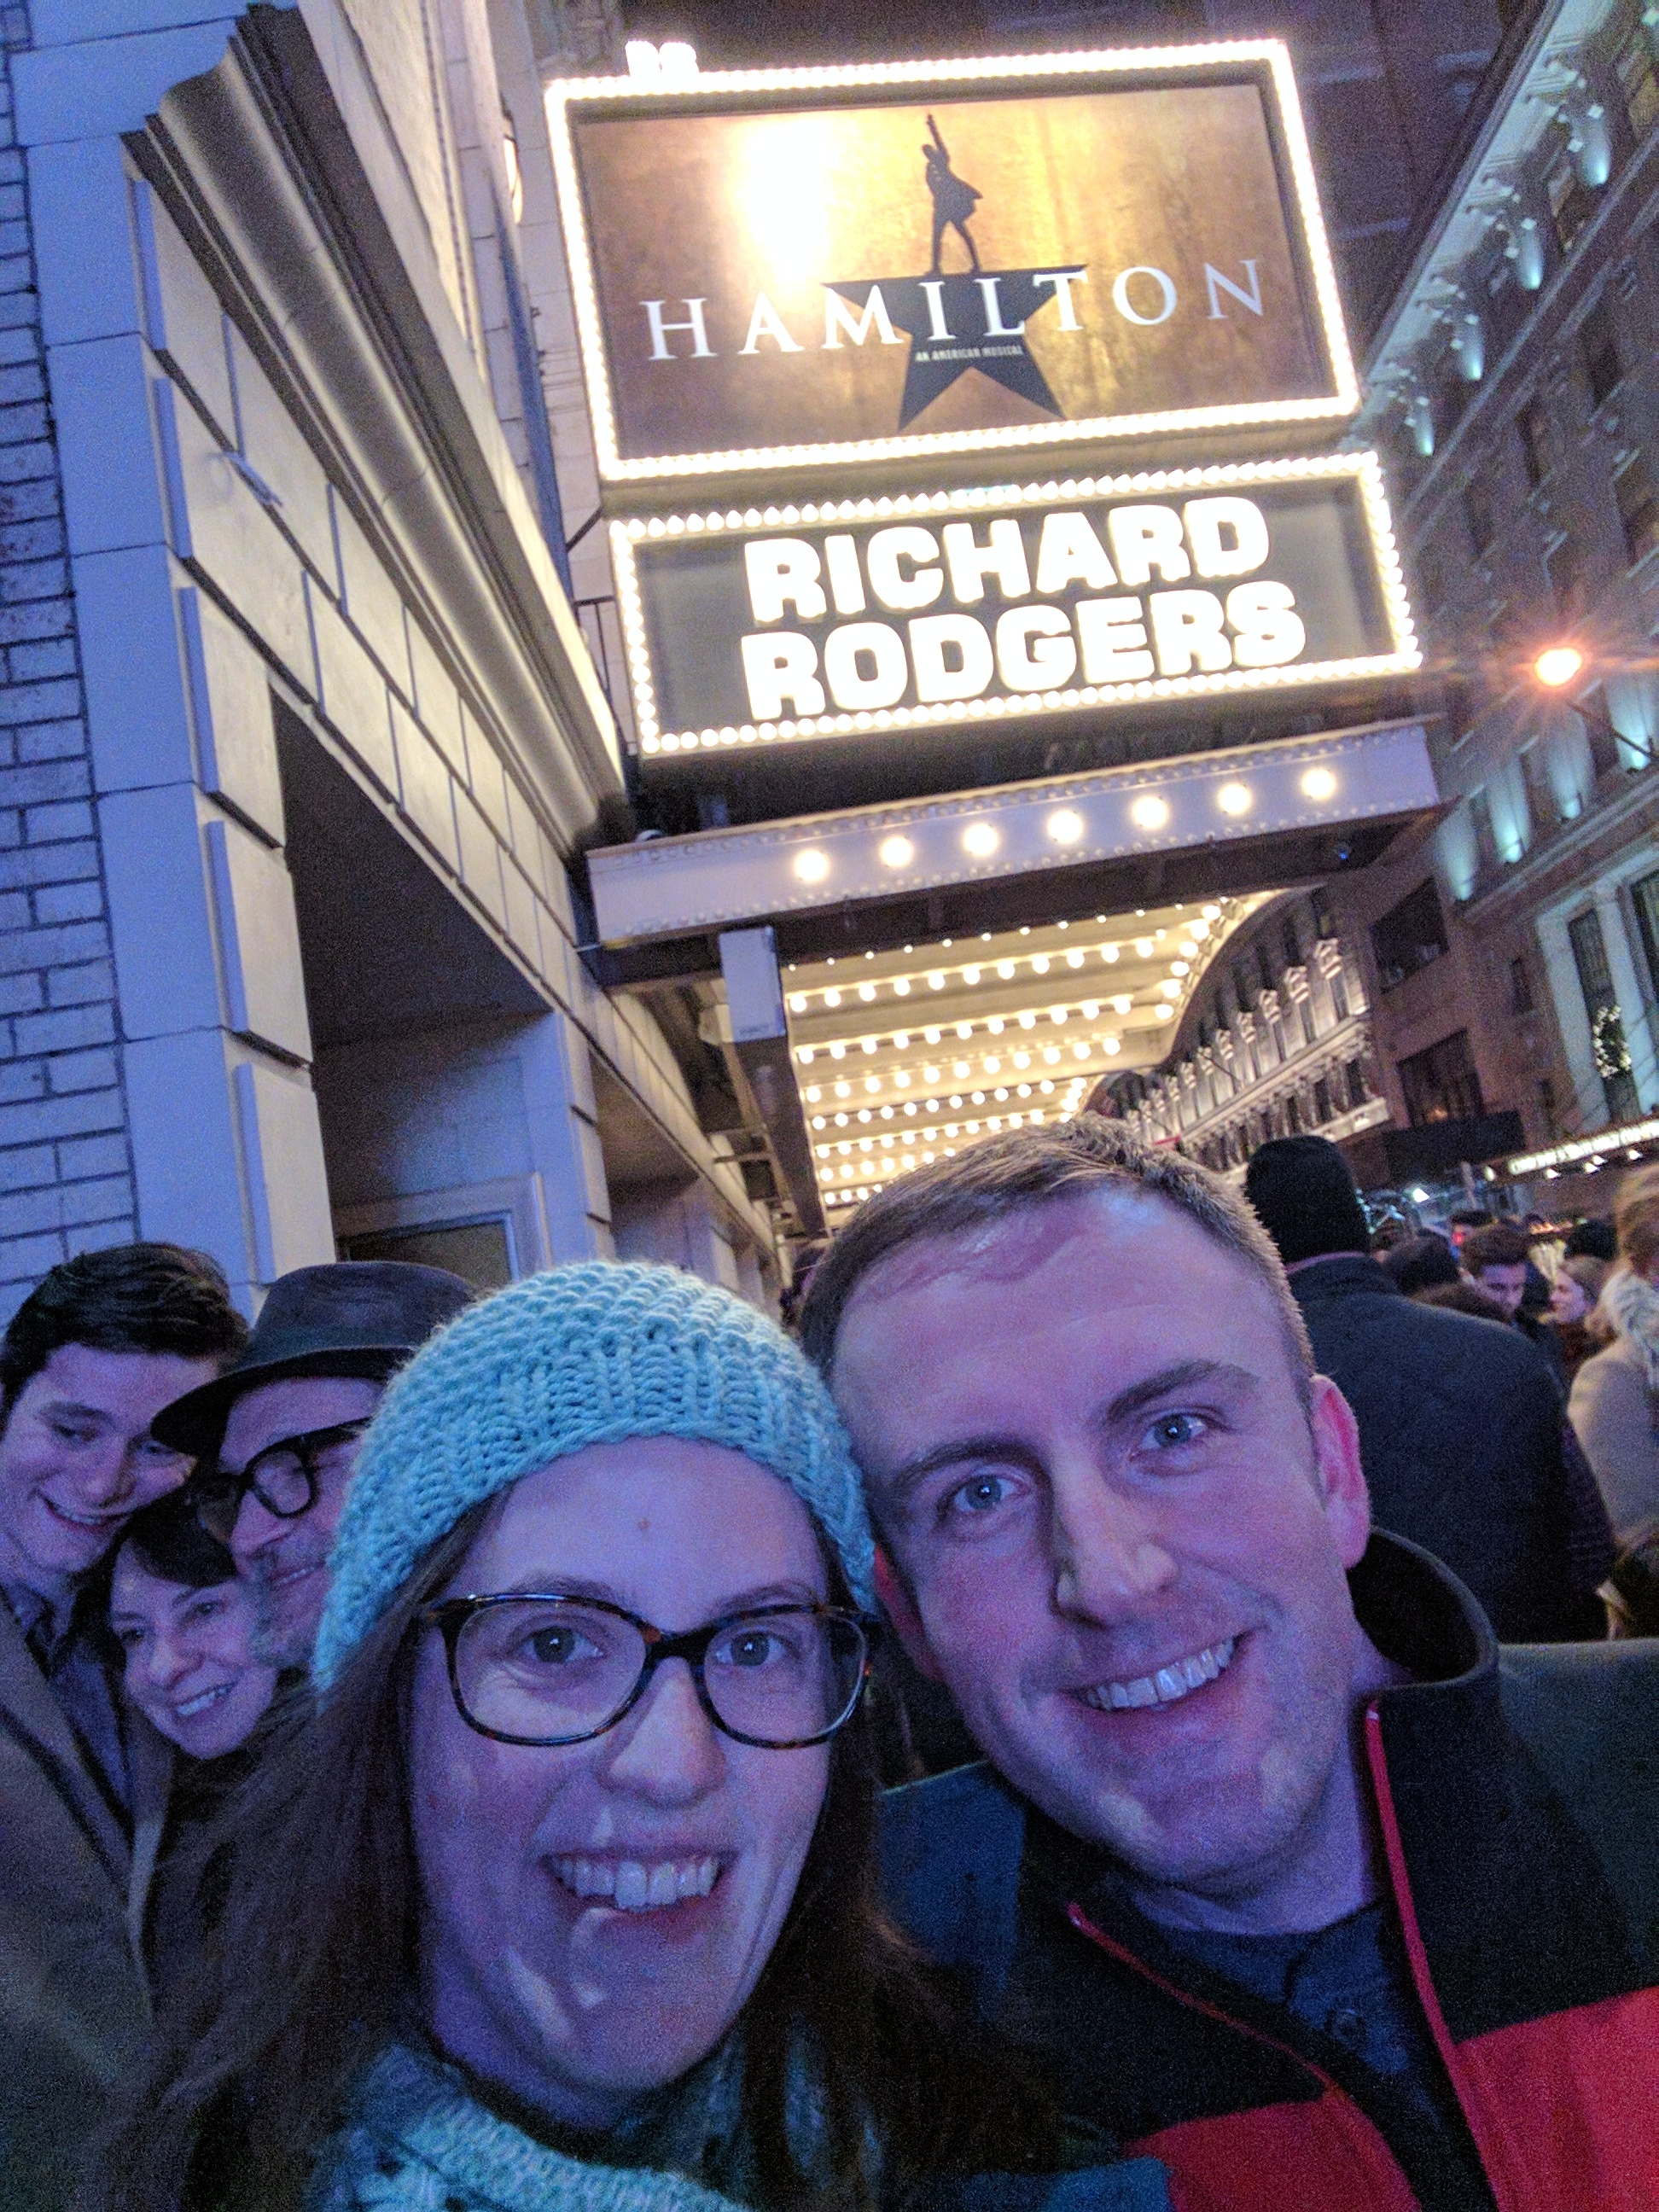 Lindsay and her husband at night, about 30 feet in front of the sign for Richard Rodgers and Hamilton the musical